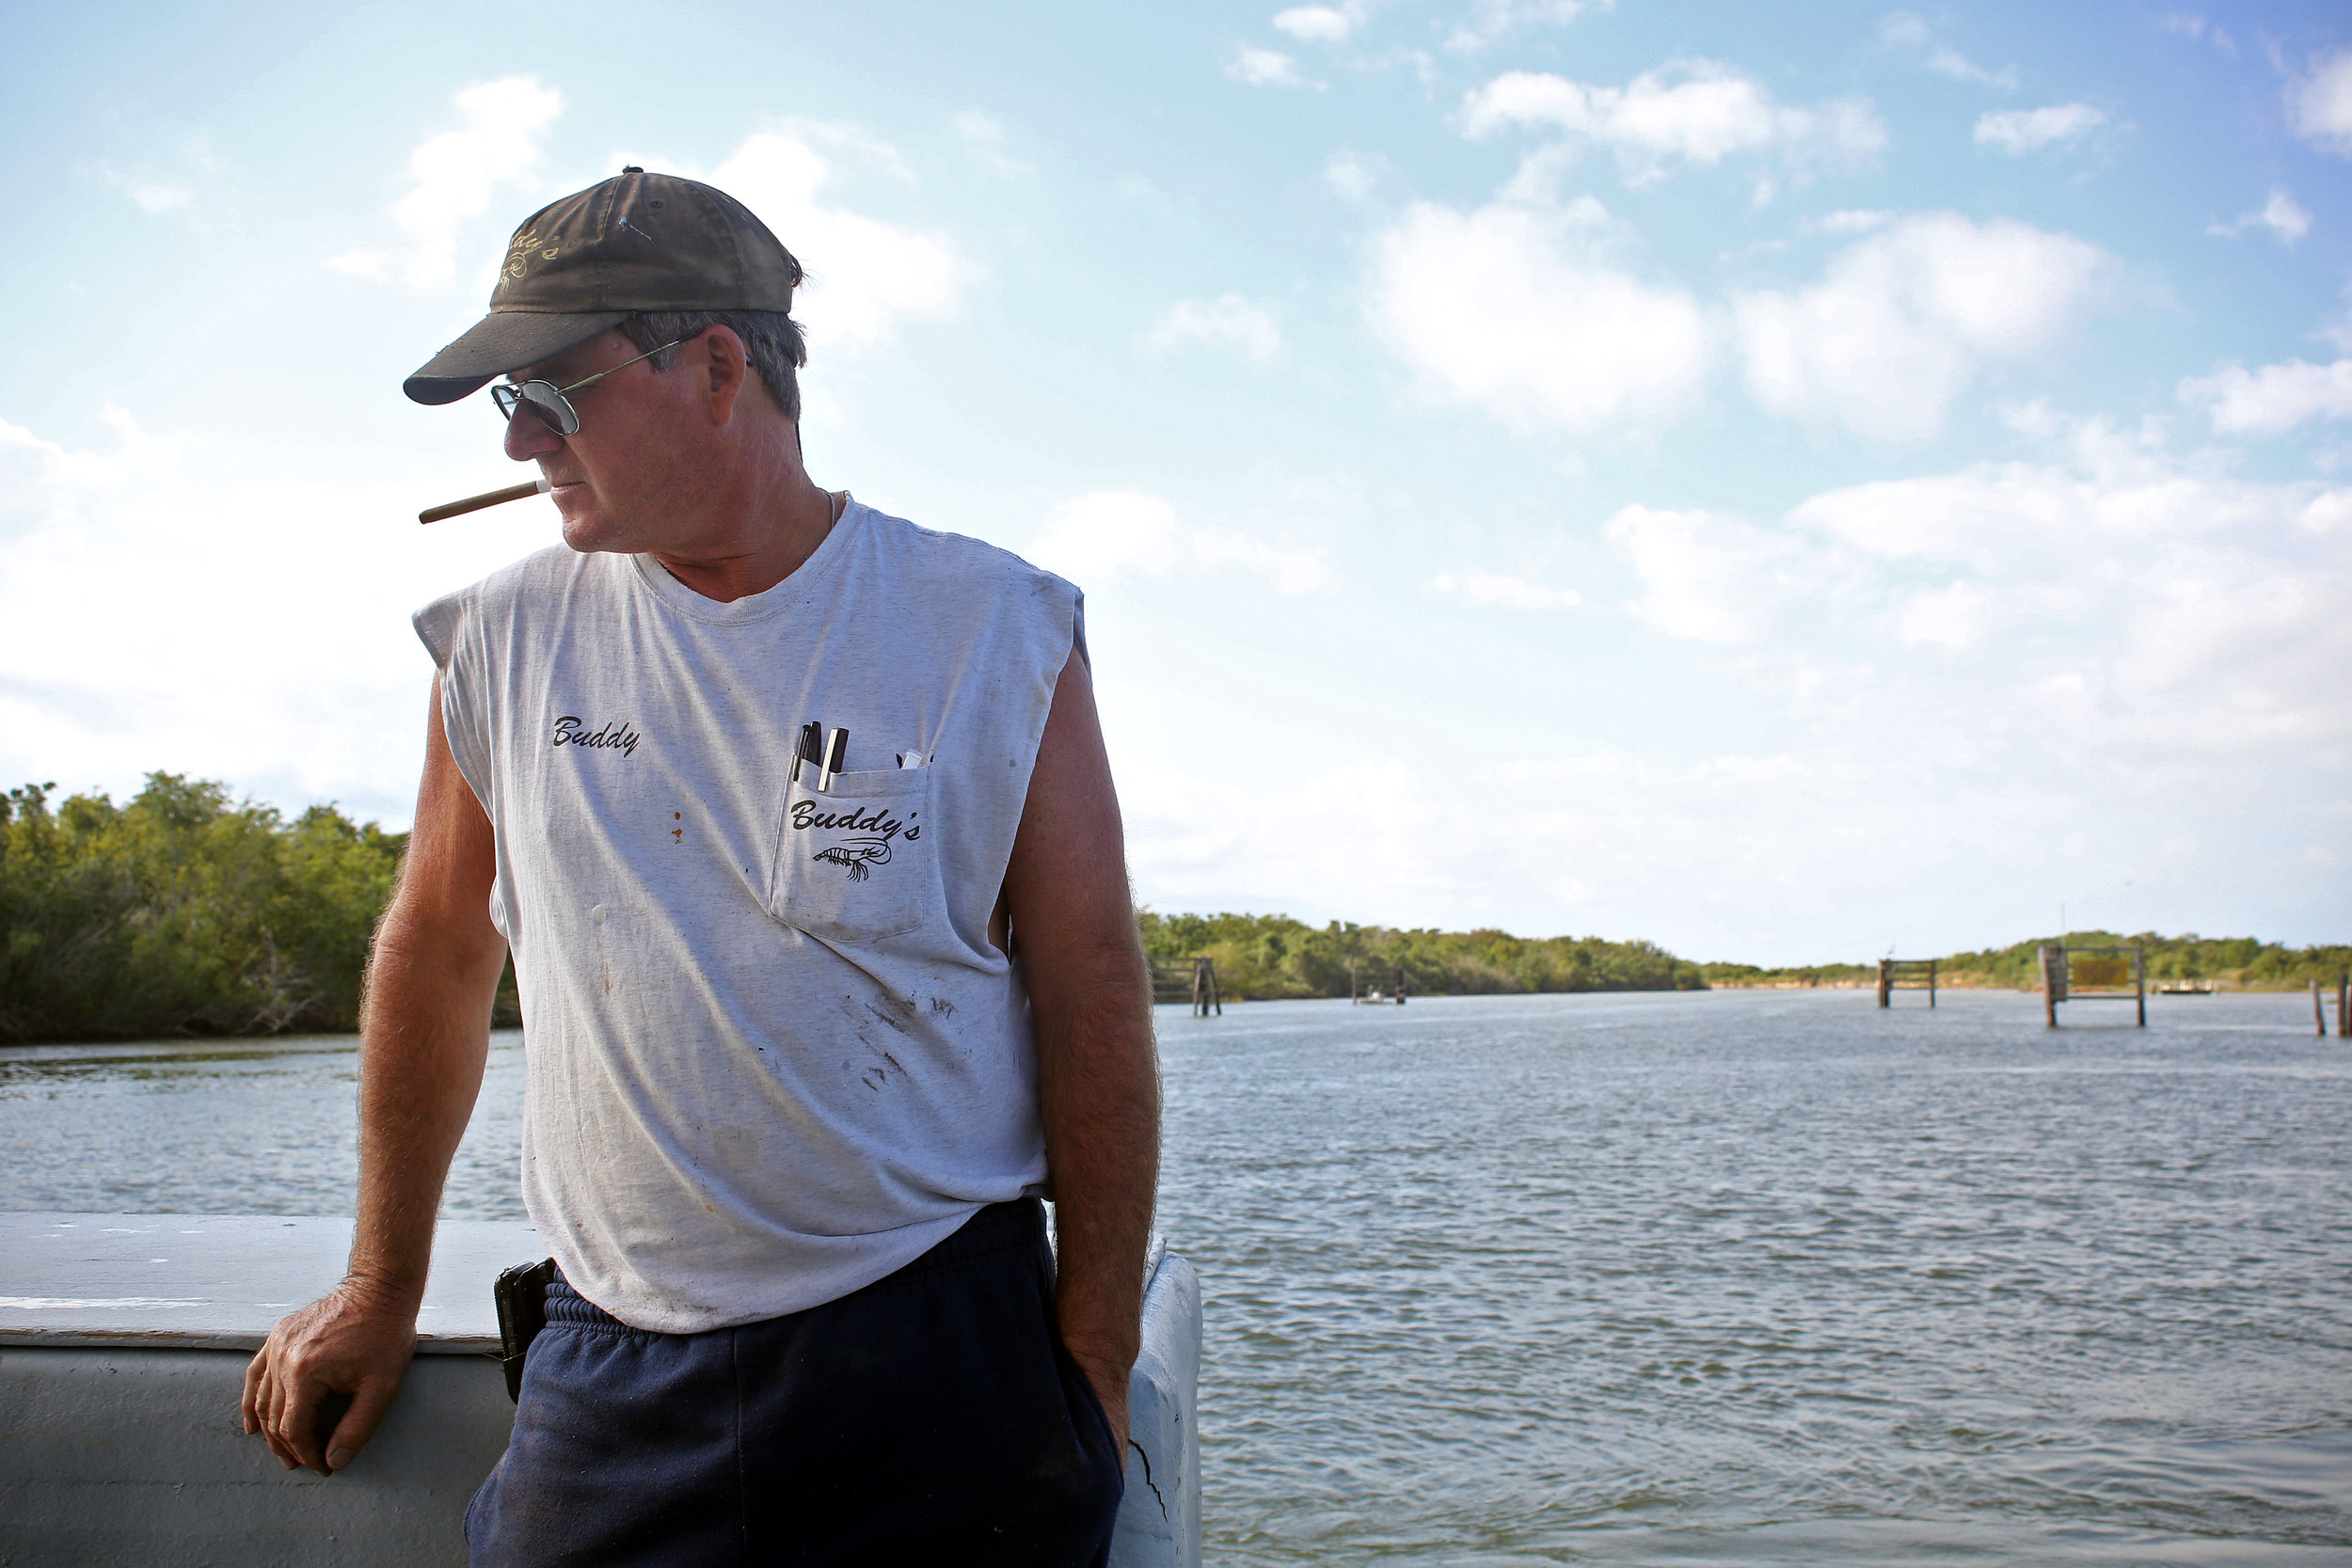 Buddy Treybig, a longtime shrimper on Matagorda Bay, said fishing there has never been harder. Prolonged drought and demand for water upstream in the Austin area have meant less fresh water flowing into the bay, which is essential to the marine life that provides incomes for coastal residents.